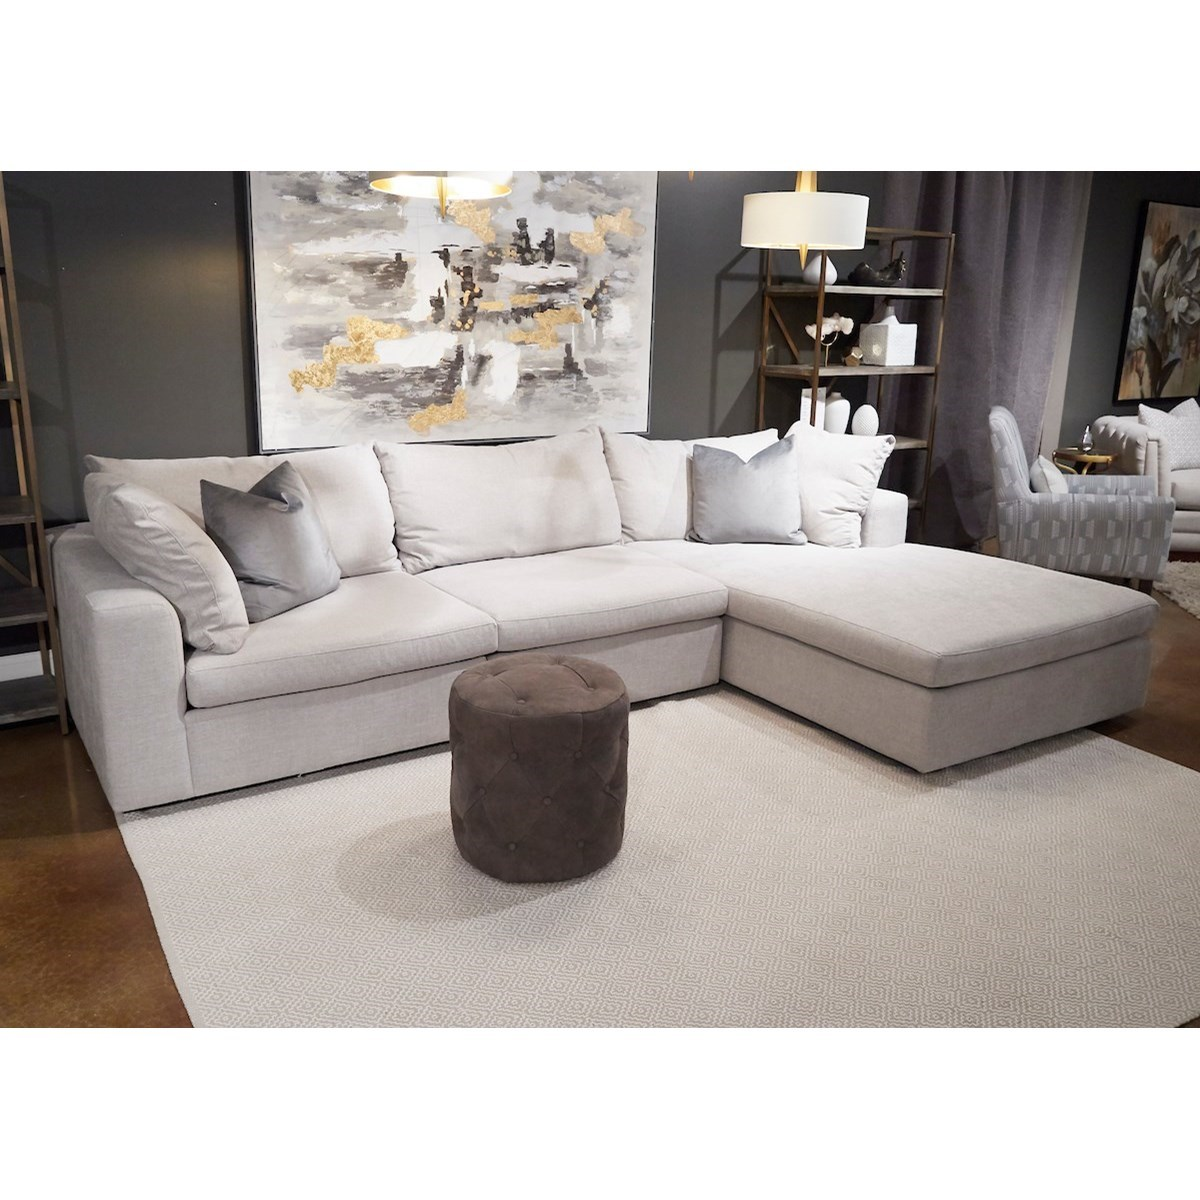 Arnell 3-Seat Sectional Sofa w/ RAF Chaise by Klaussner at Johnny Janosik